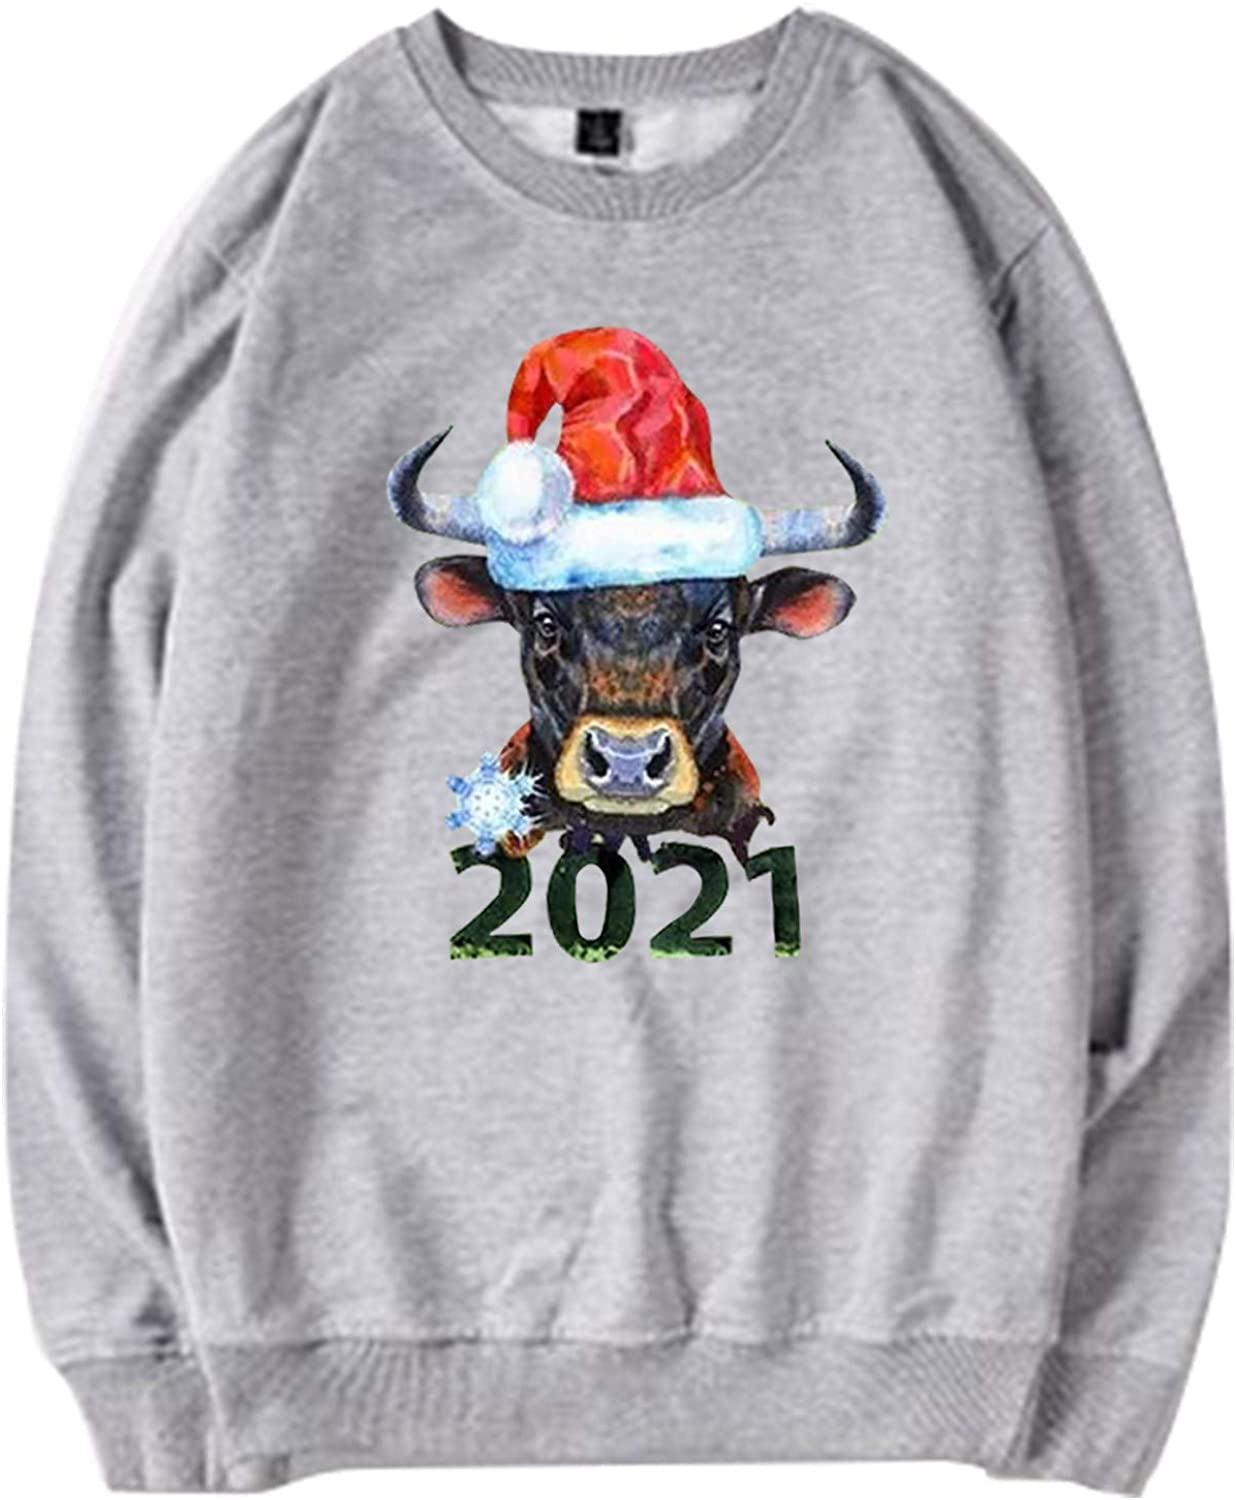 Long Max 73% OFF Sleeve Pullover Shirts for Merry Christmas Women 2021 Superior Funny